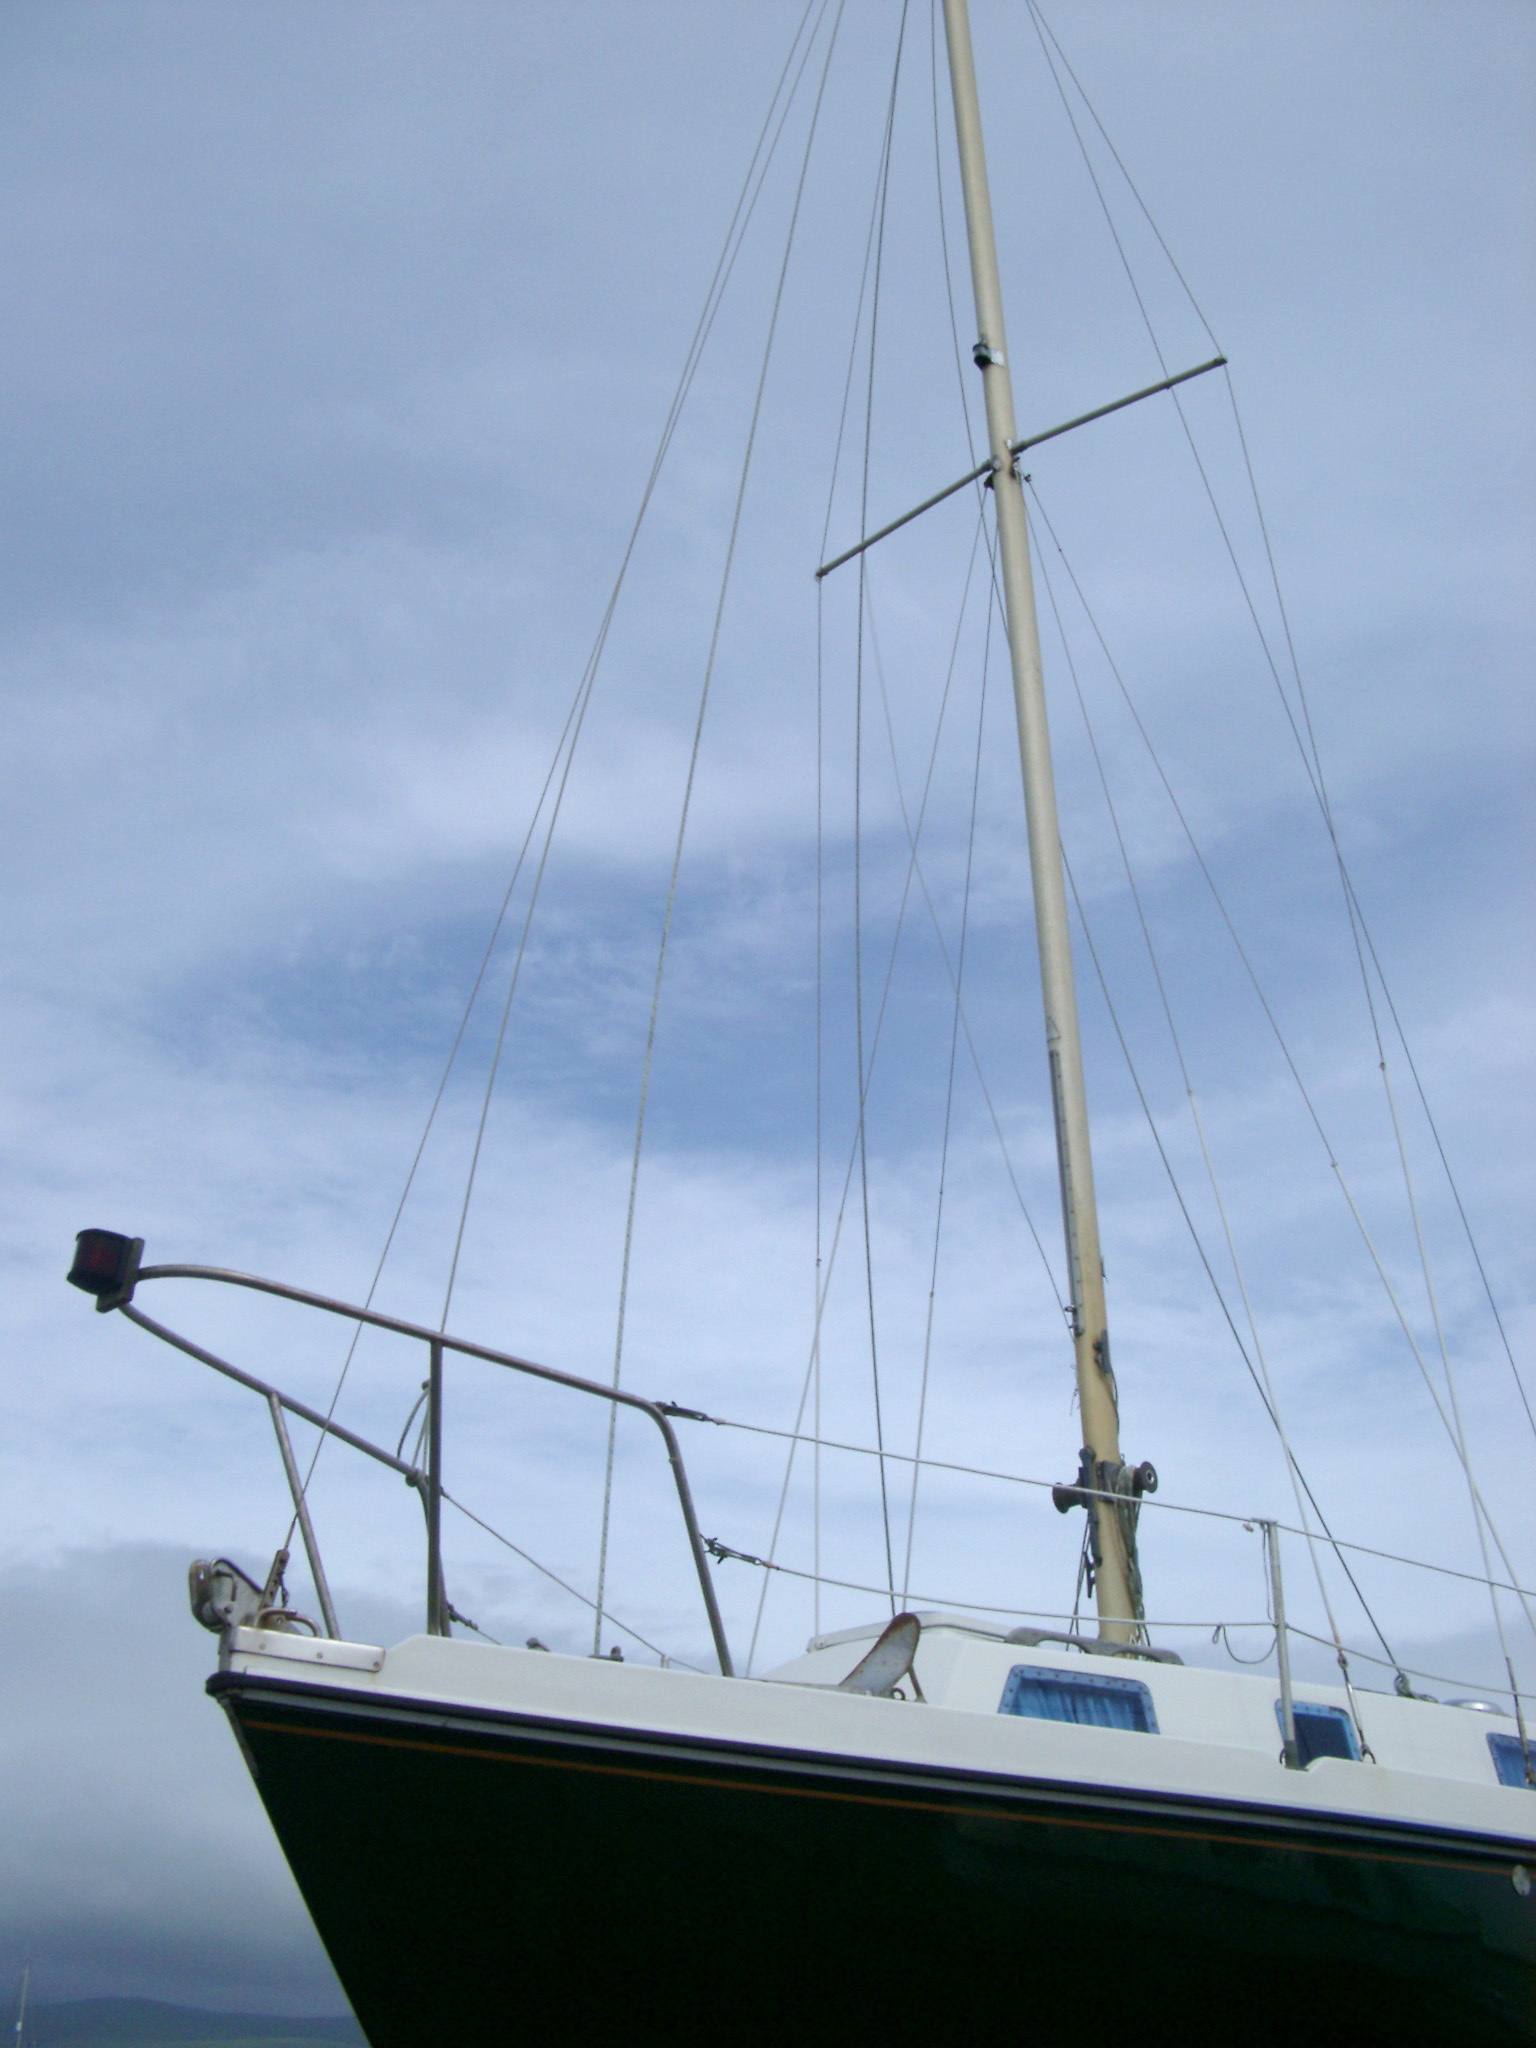 Yacht forecastle with a closeup view showing the bow and front mast with its rigging and stays against a cloudy sky